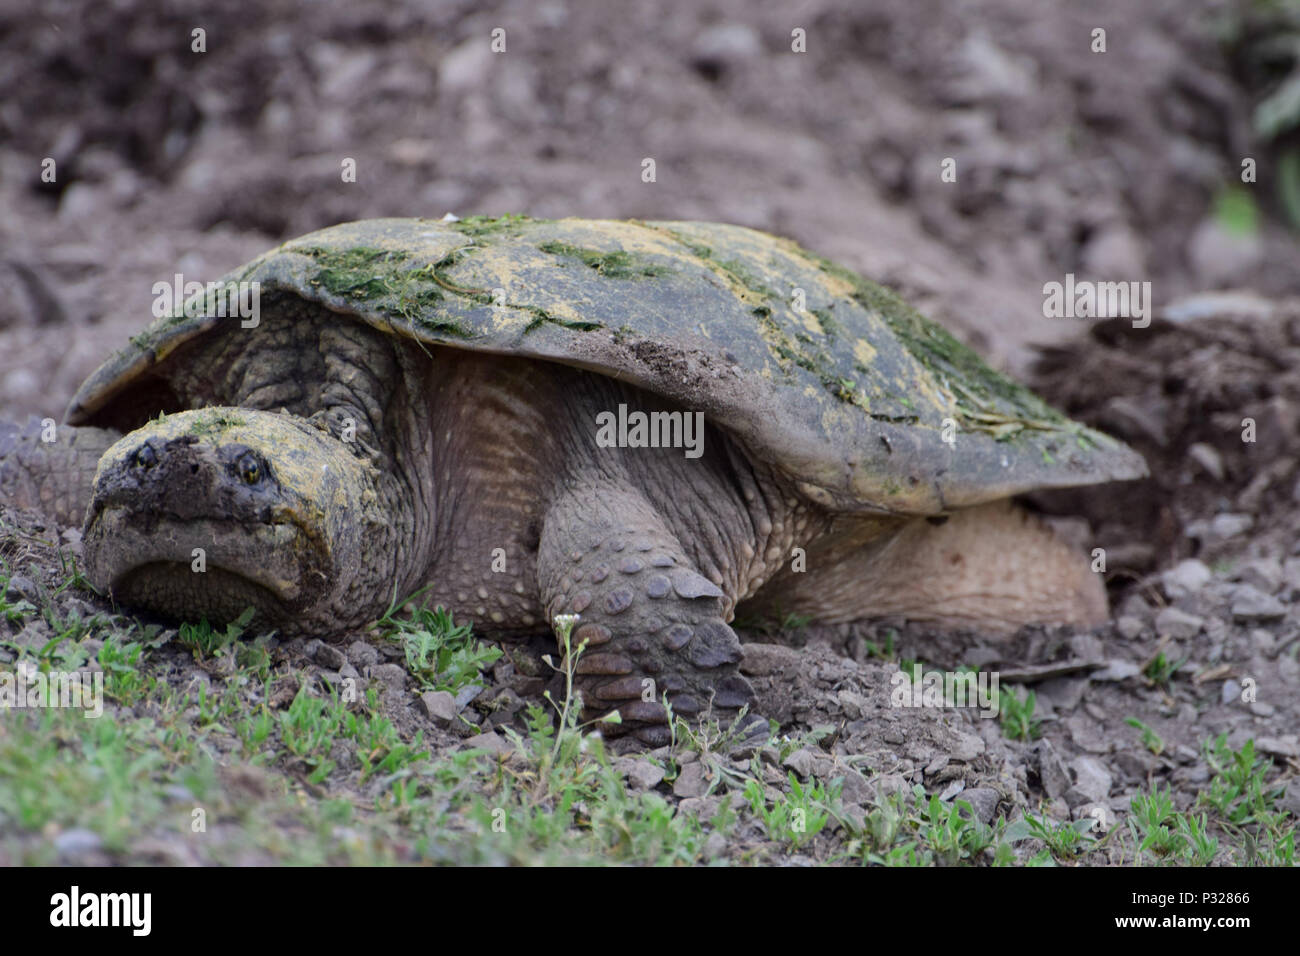 Snapping turtle on the roadside Stock Photo